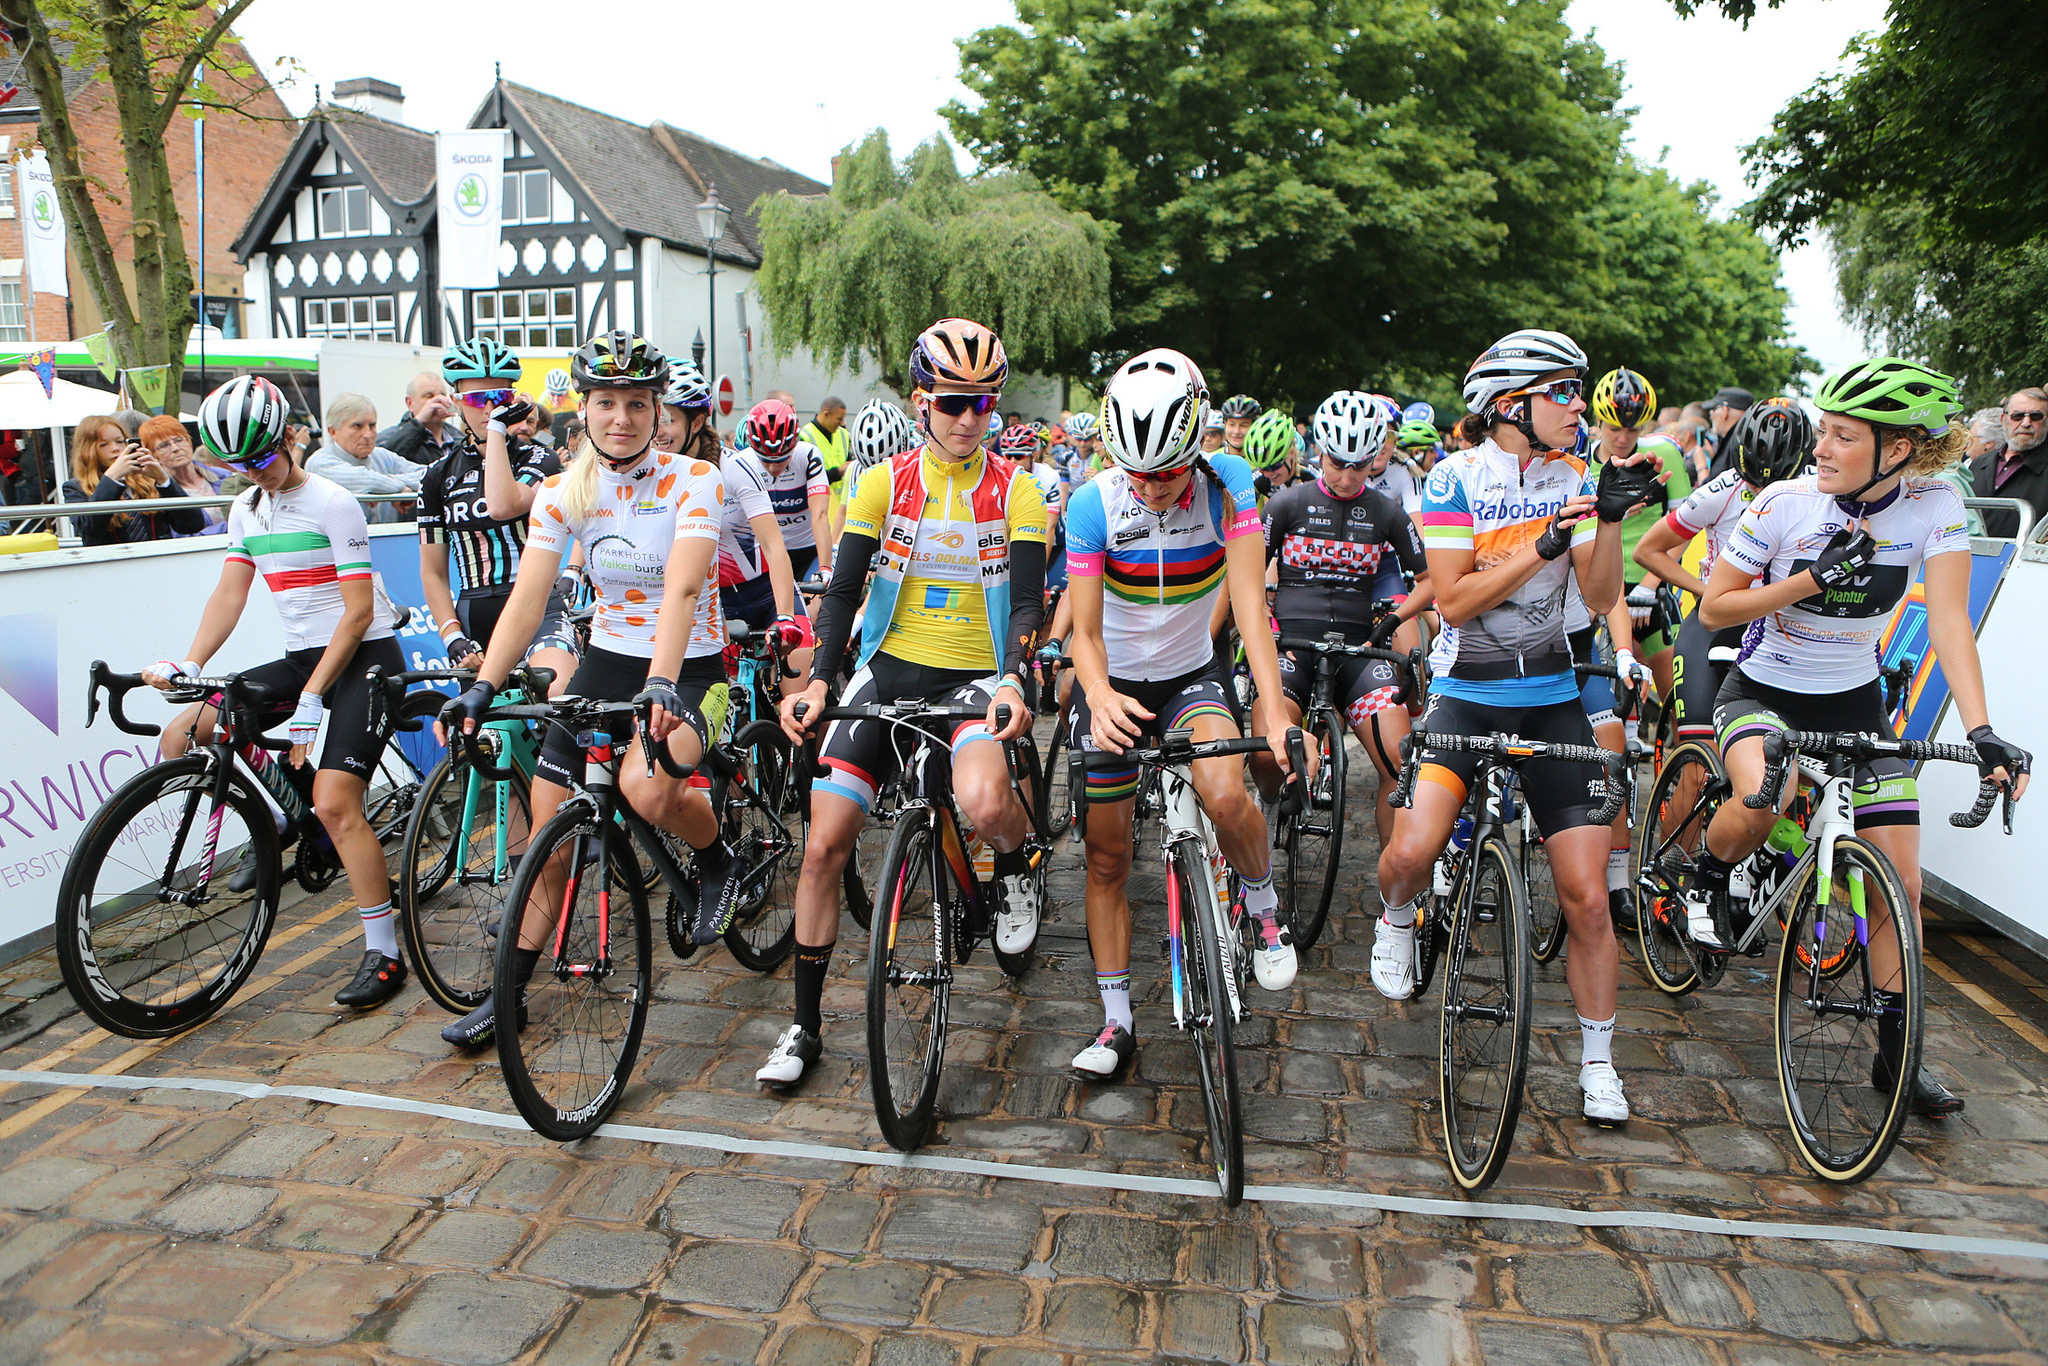 The jersey wearers in the 2016 Aviva Women's Tour ahead of stage 2.